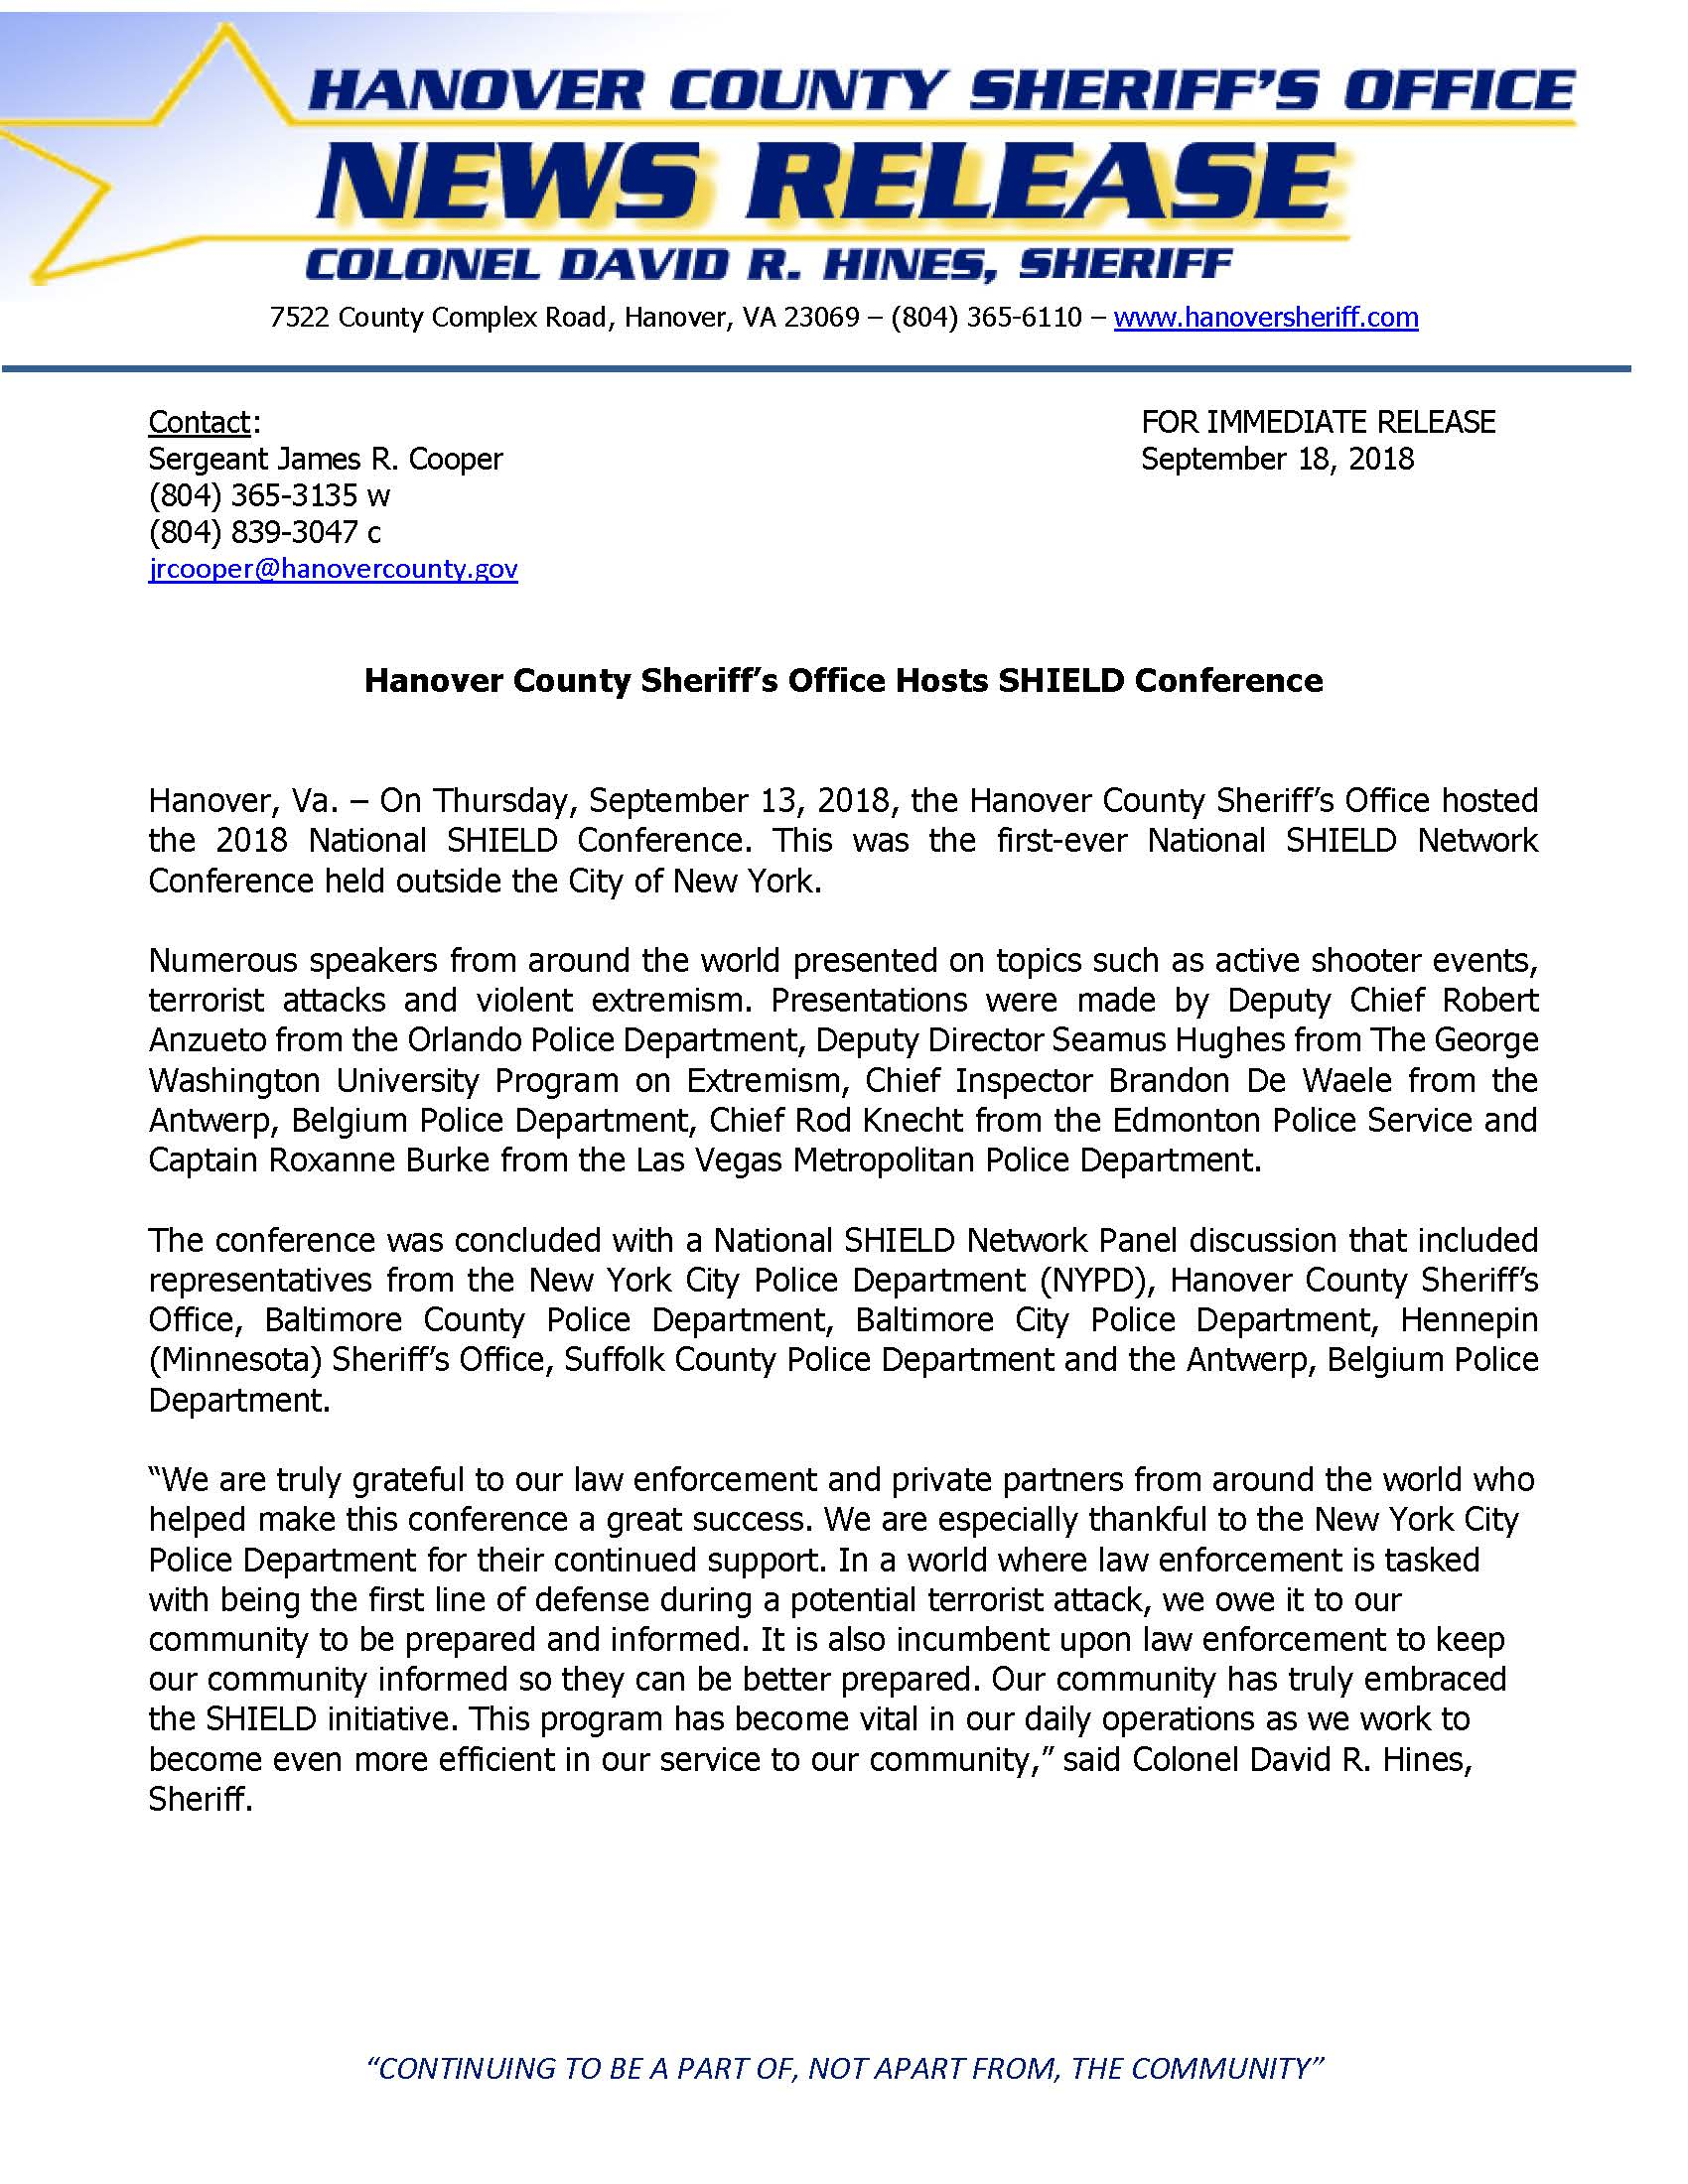 HCSO- HCSO Hosts National SHIELD Network Conference- September 2018_Page_1